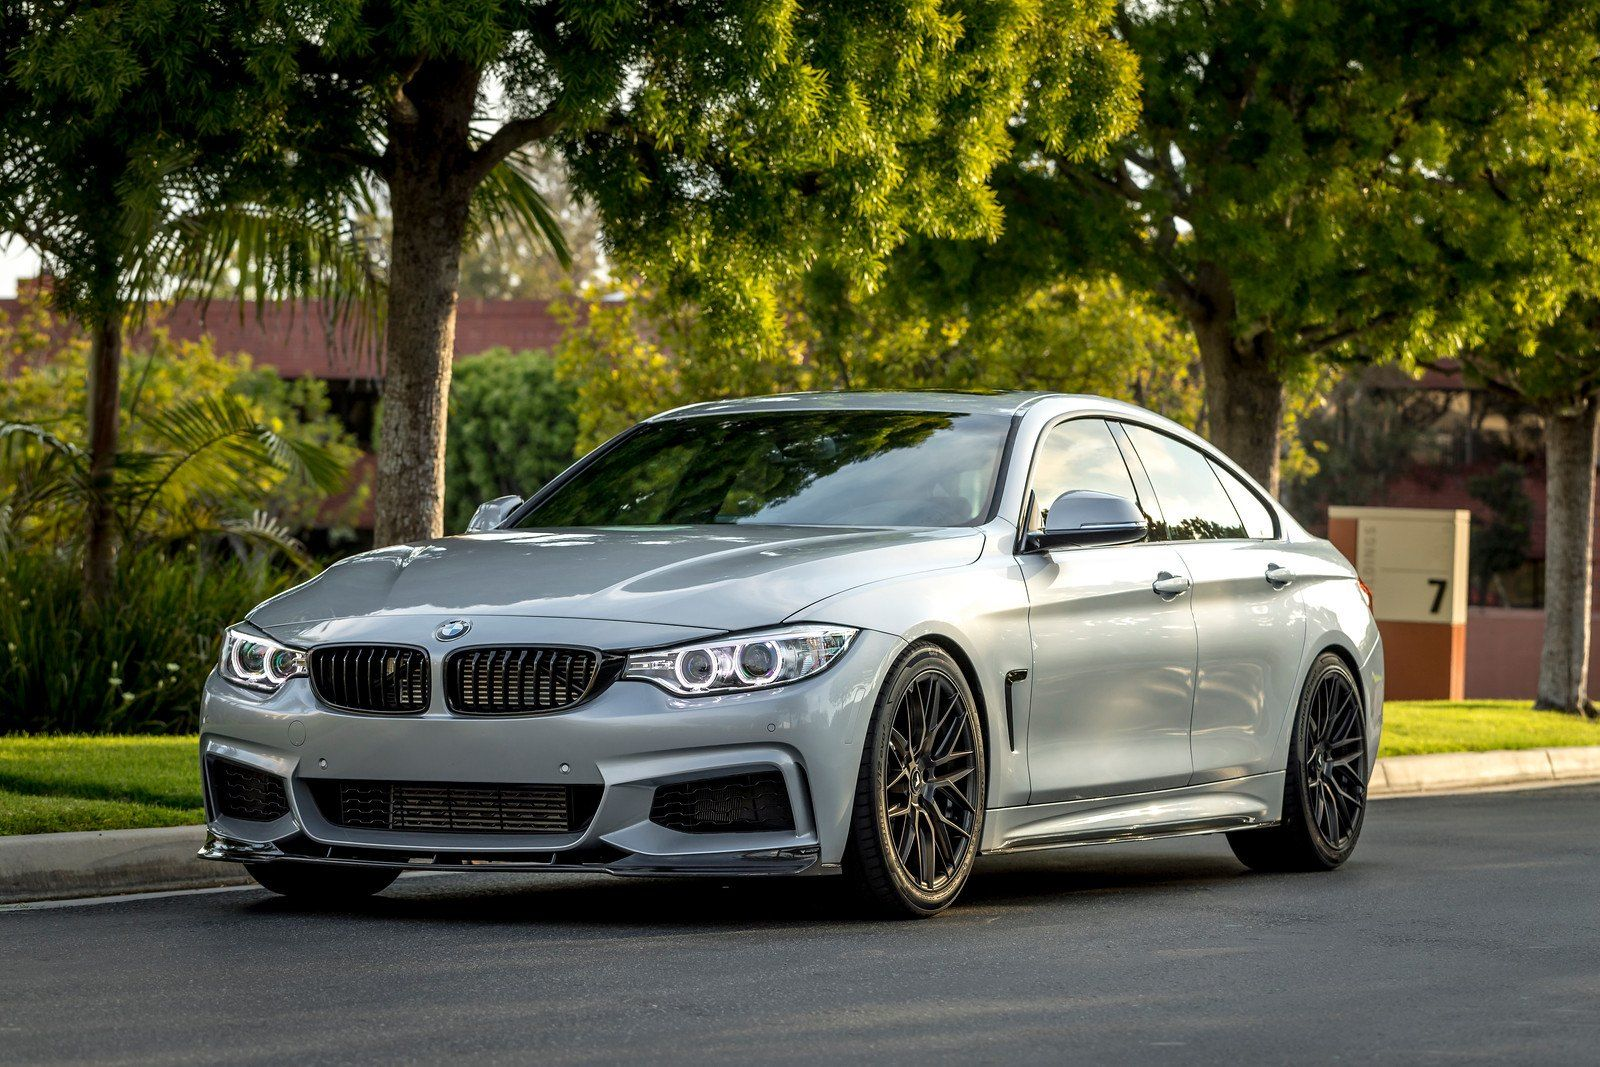 Customized For Jaw Dropping Effect Custom Gray Bmw 3 Series On